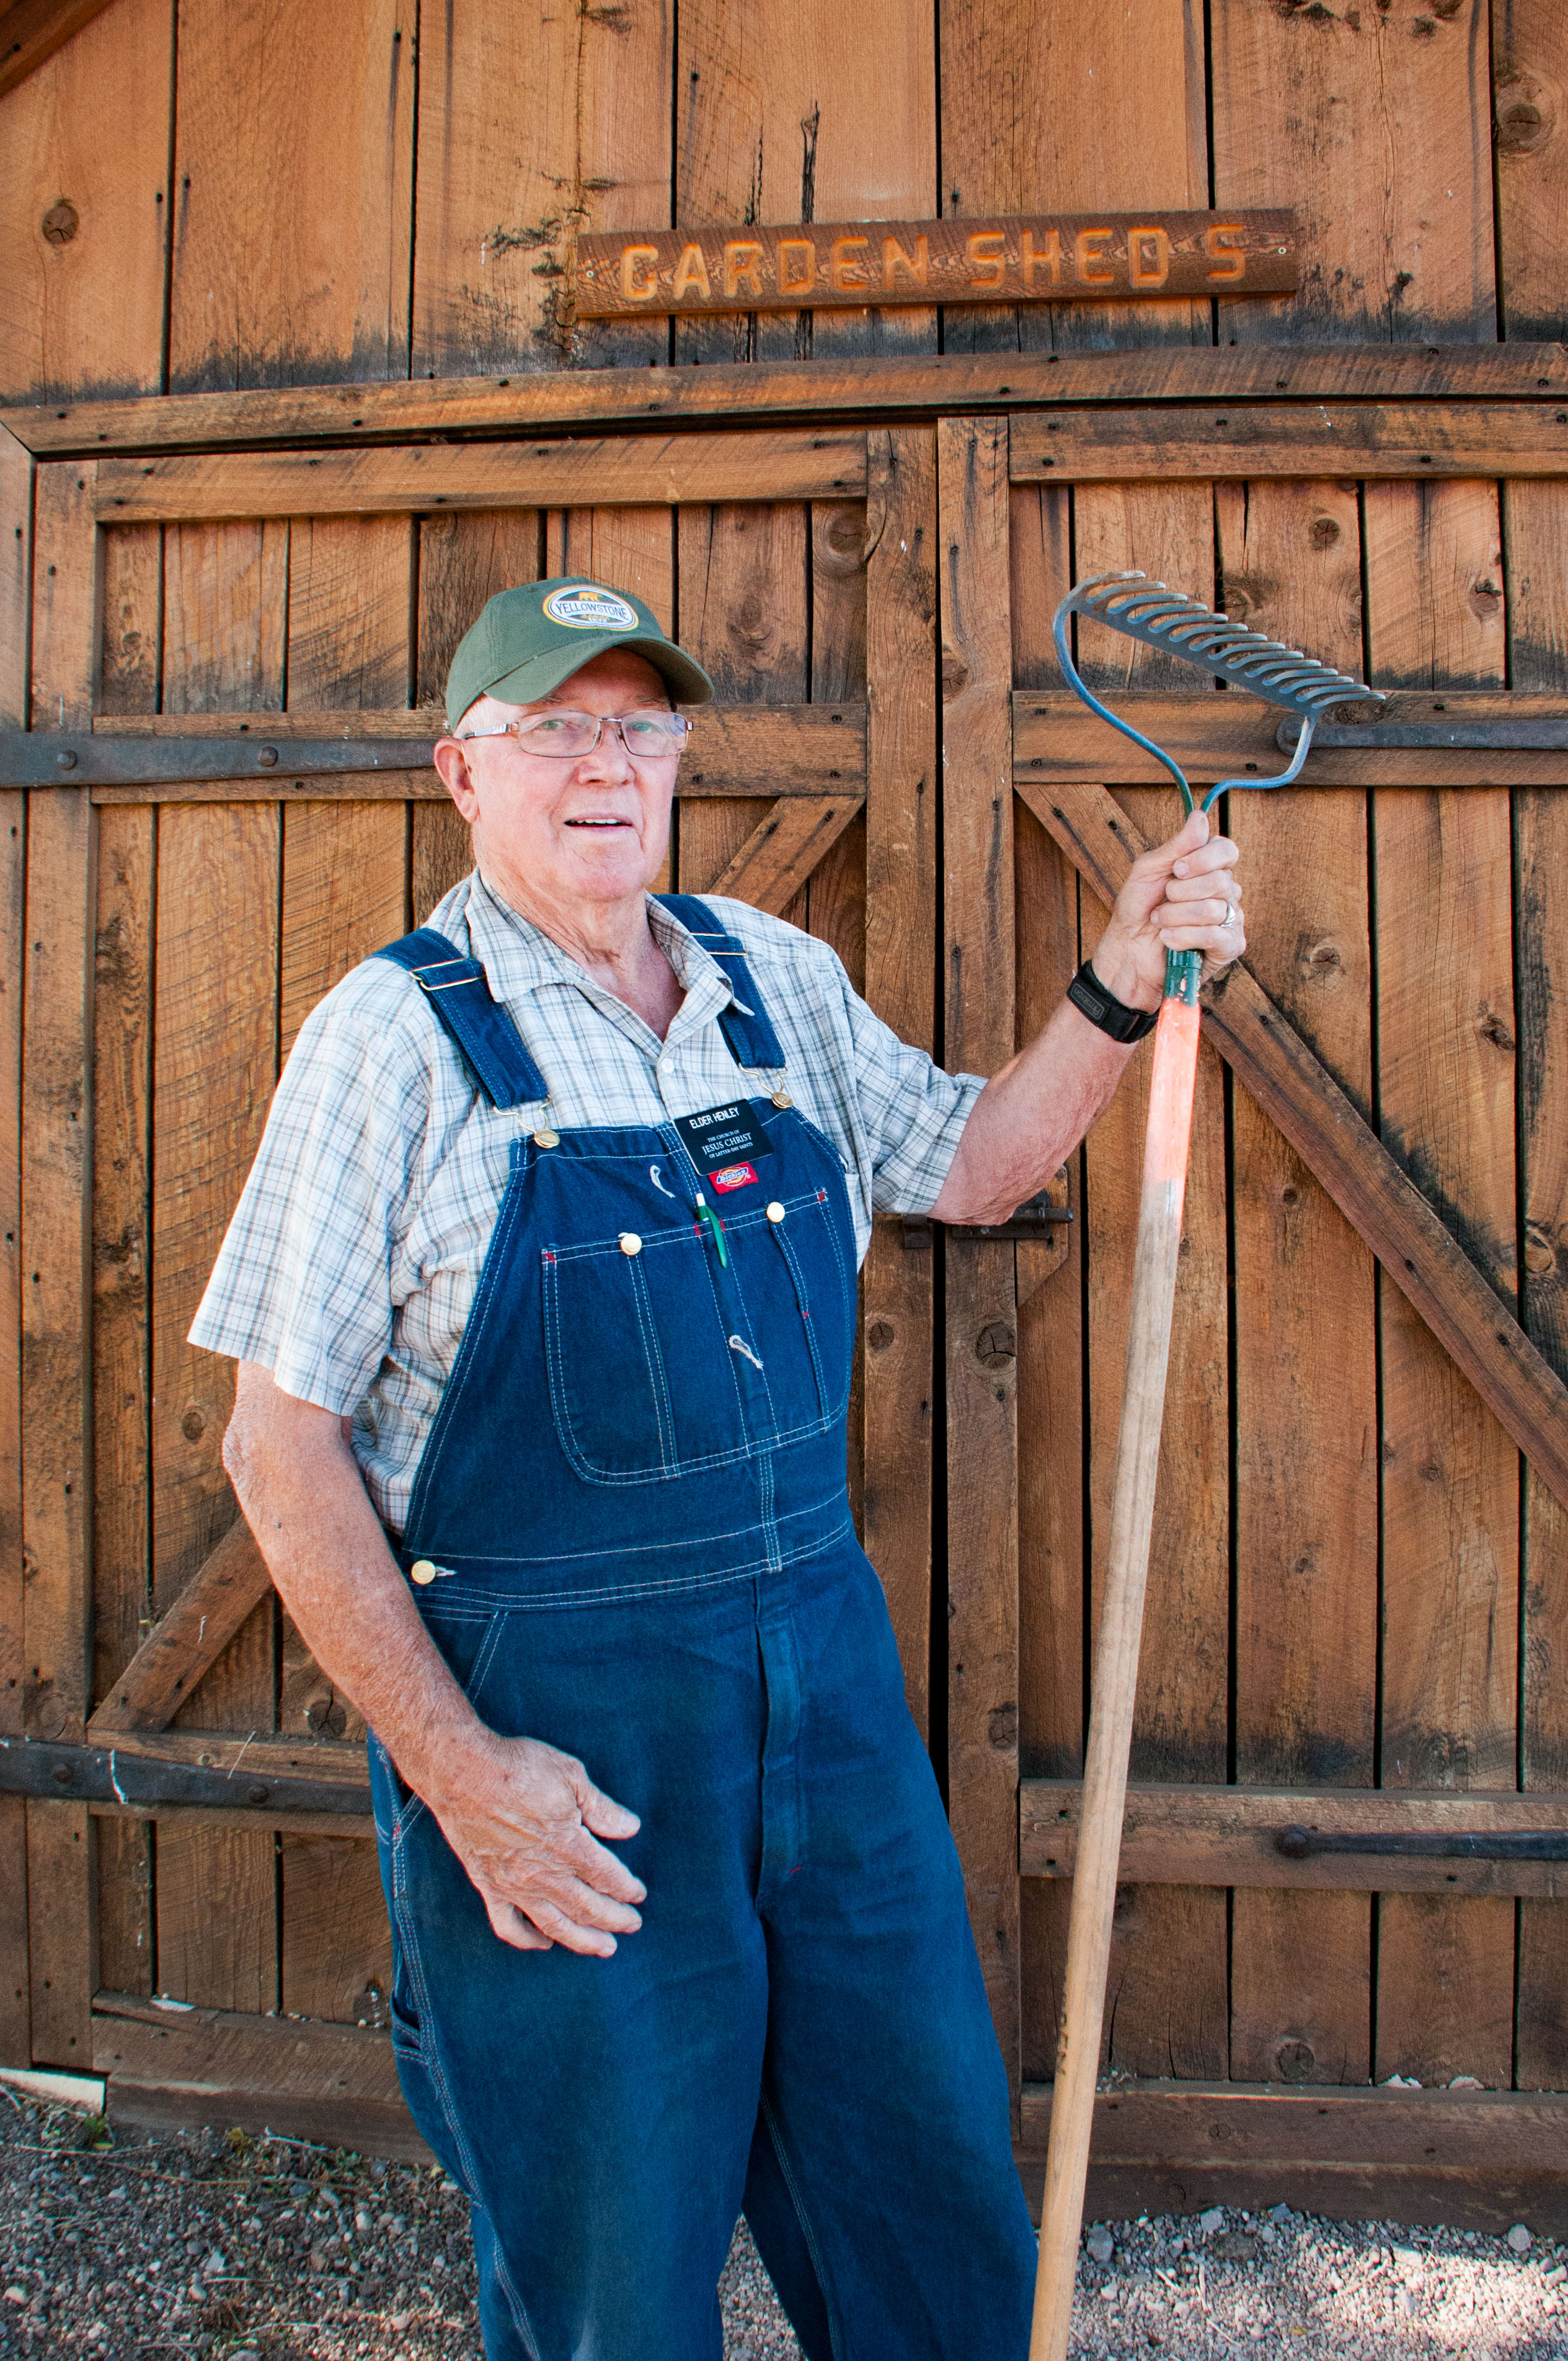 J.D. Henley, a volunteer at Cove Fort Historical Site, Millard County, Utah, June 25, 2016   Photo by Kathleen Lillywhite, St. George News